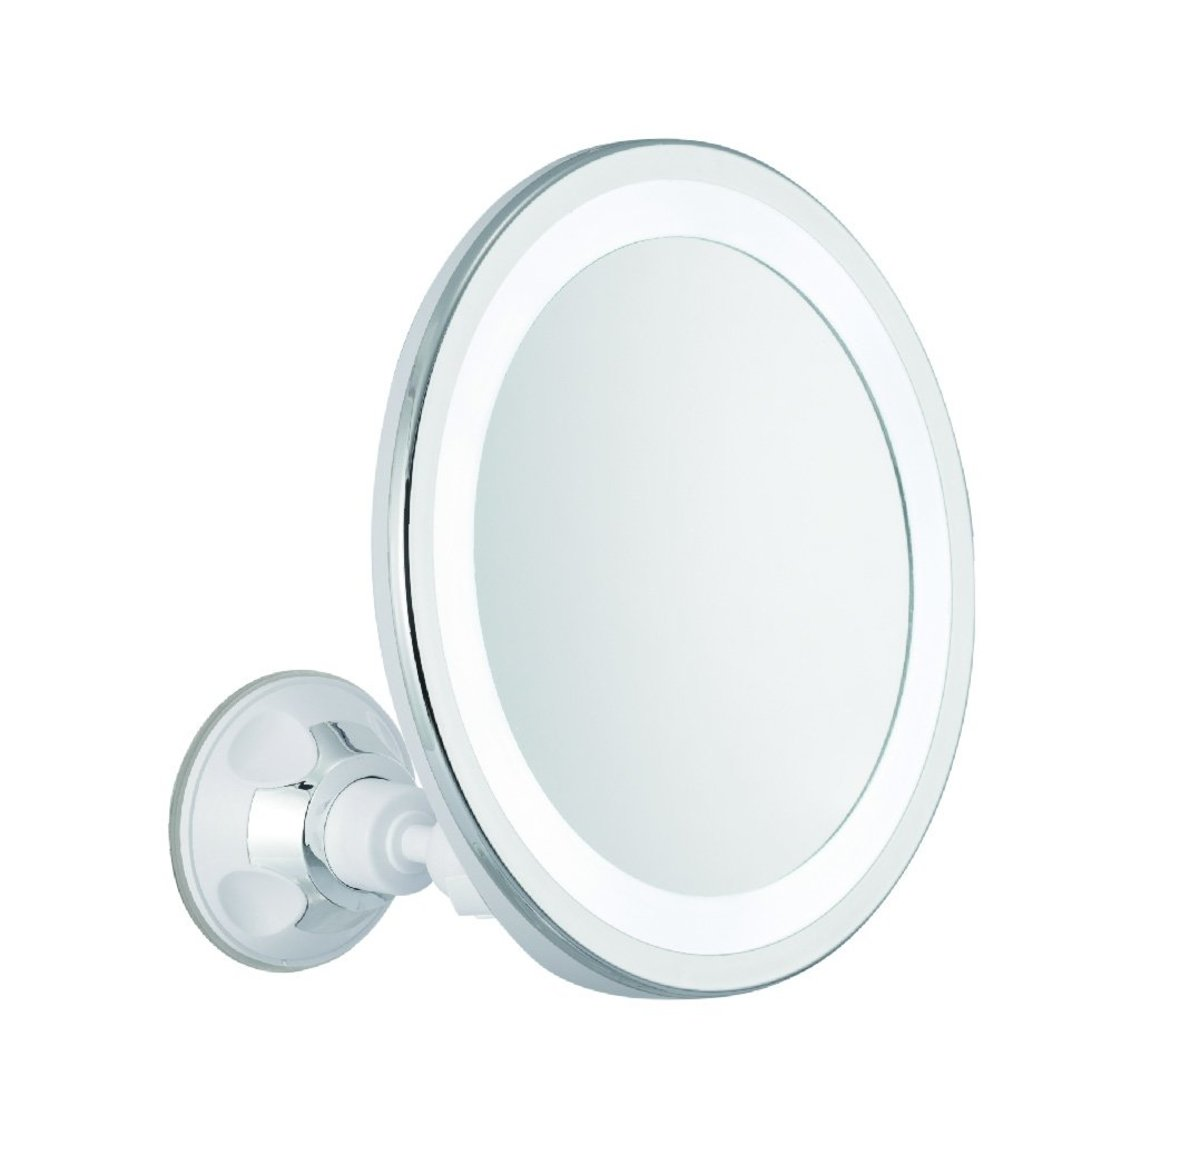 Adjustable mirror with daylight LED and suction cup